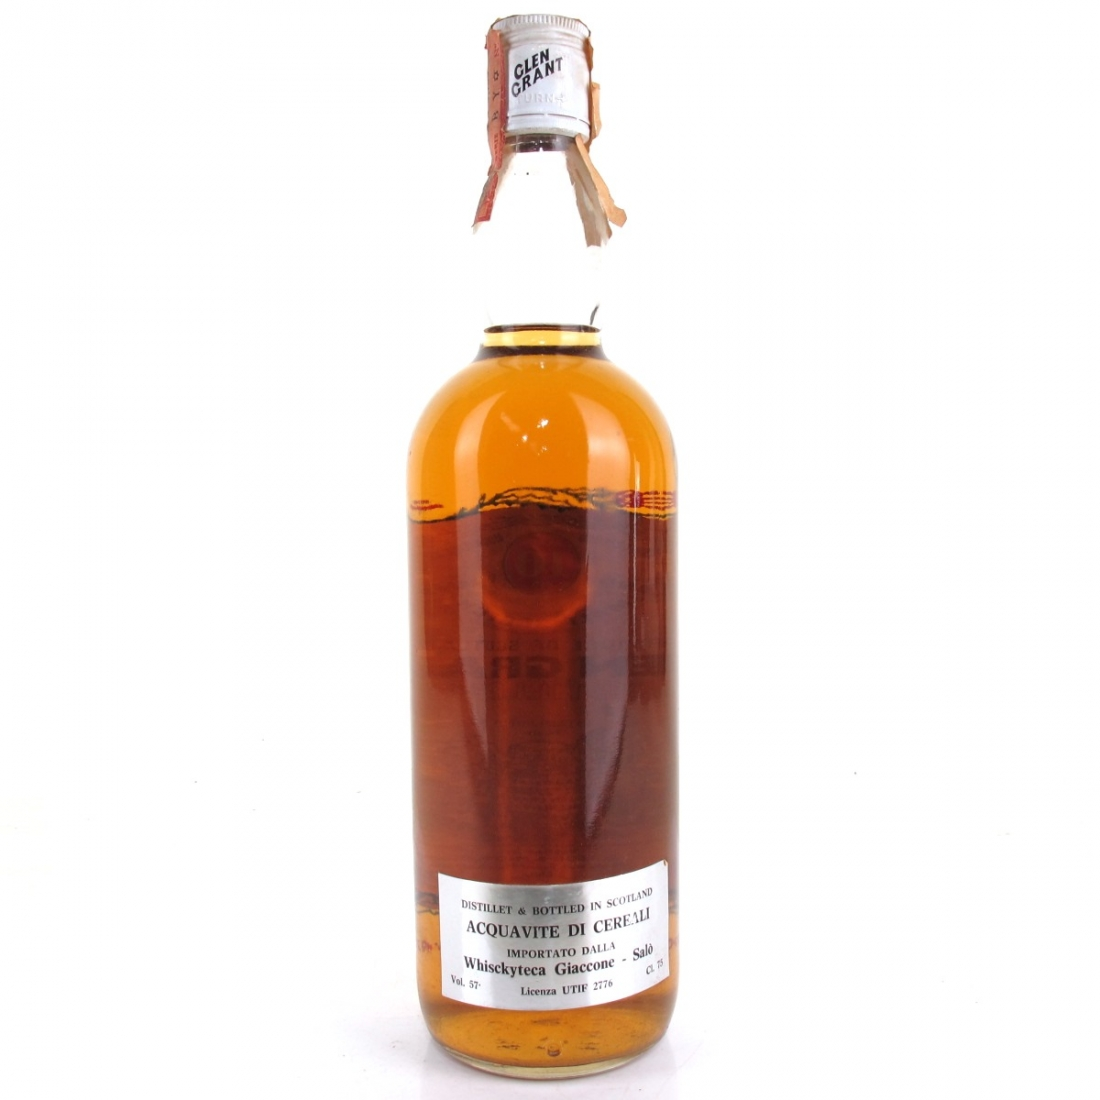 Glen Grant 10 Year Old 1970s / 100 Proof